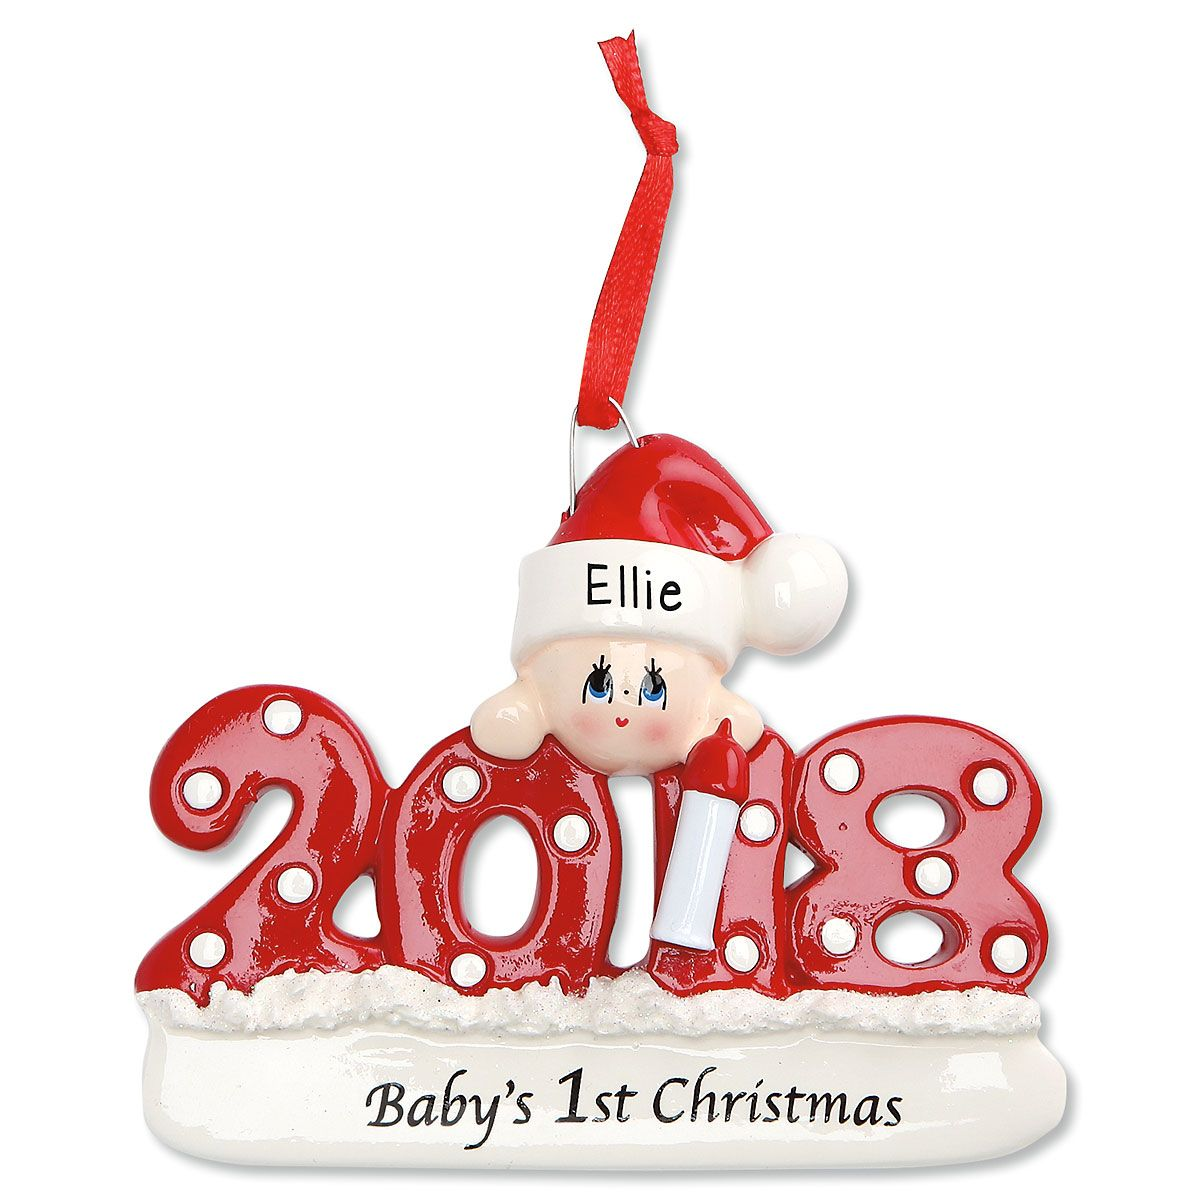 2018 Baby's 1st Personalized Christmas Ornament | Lillian ...